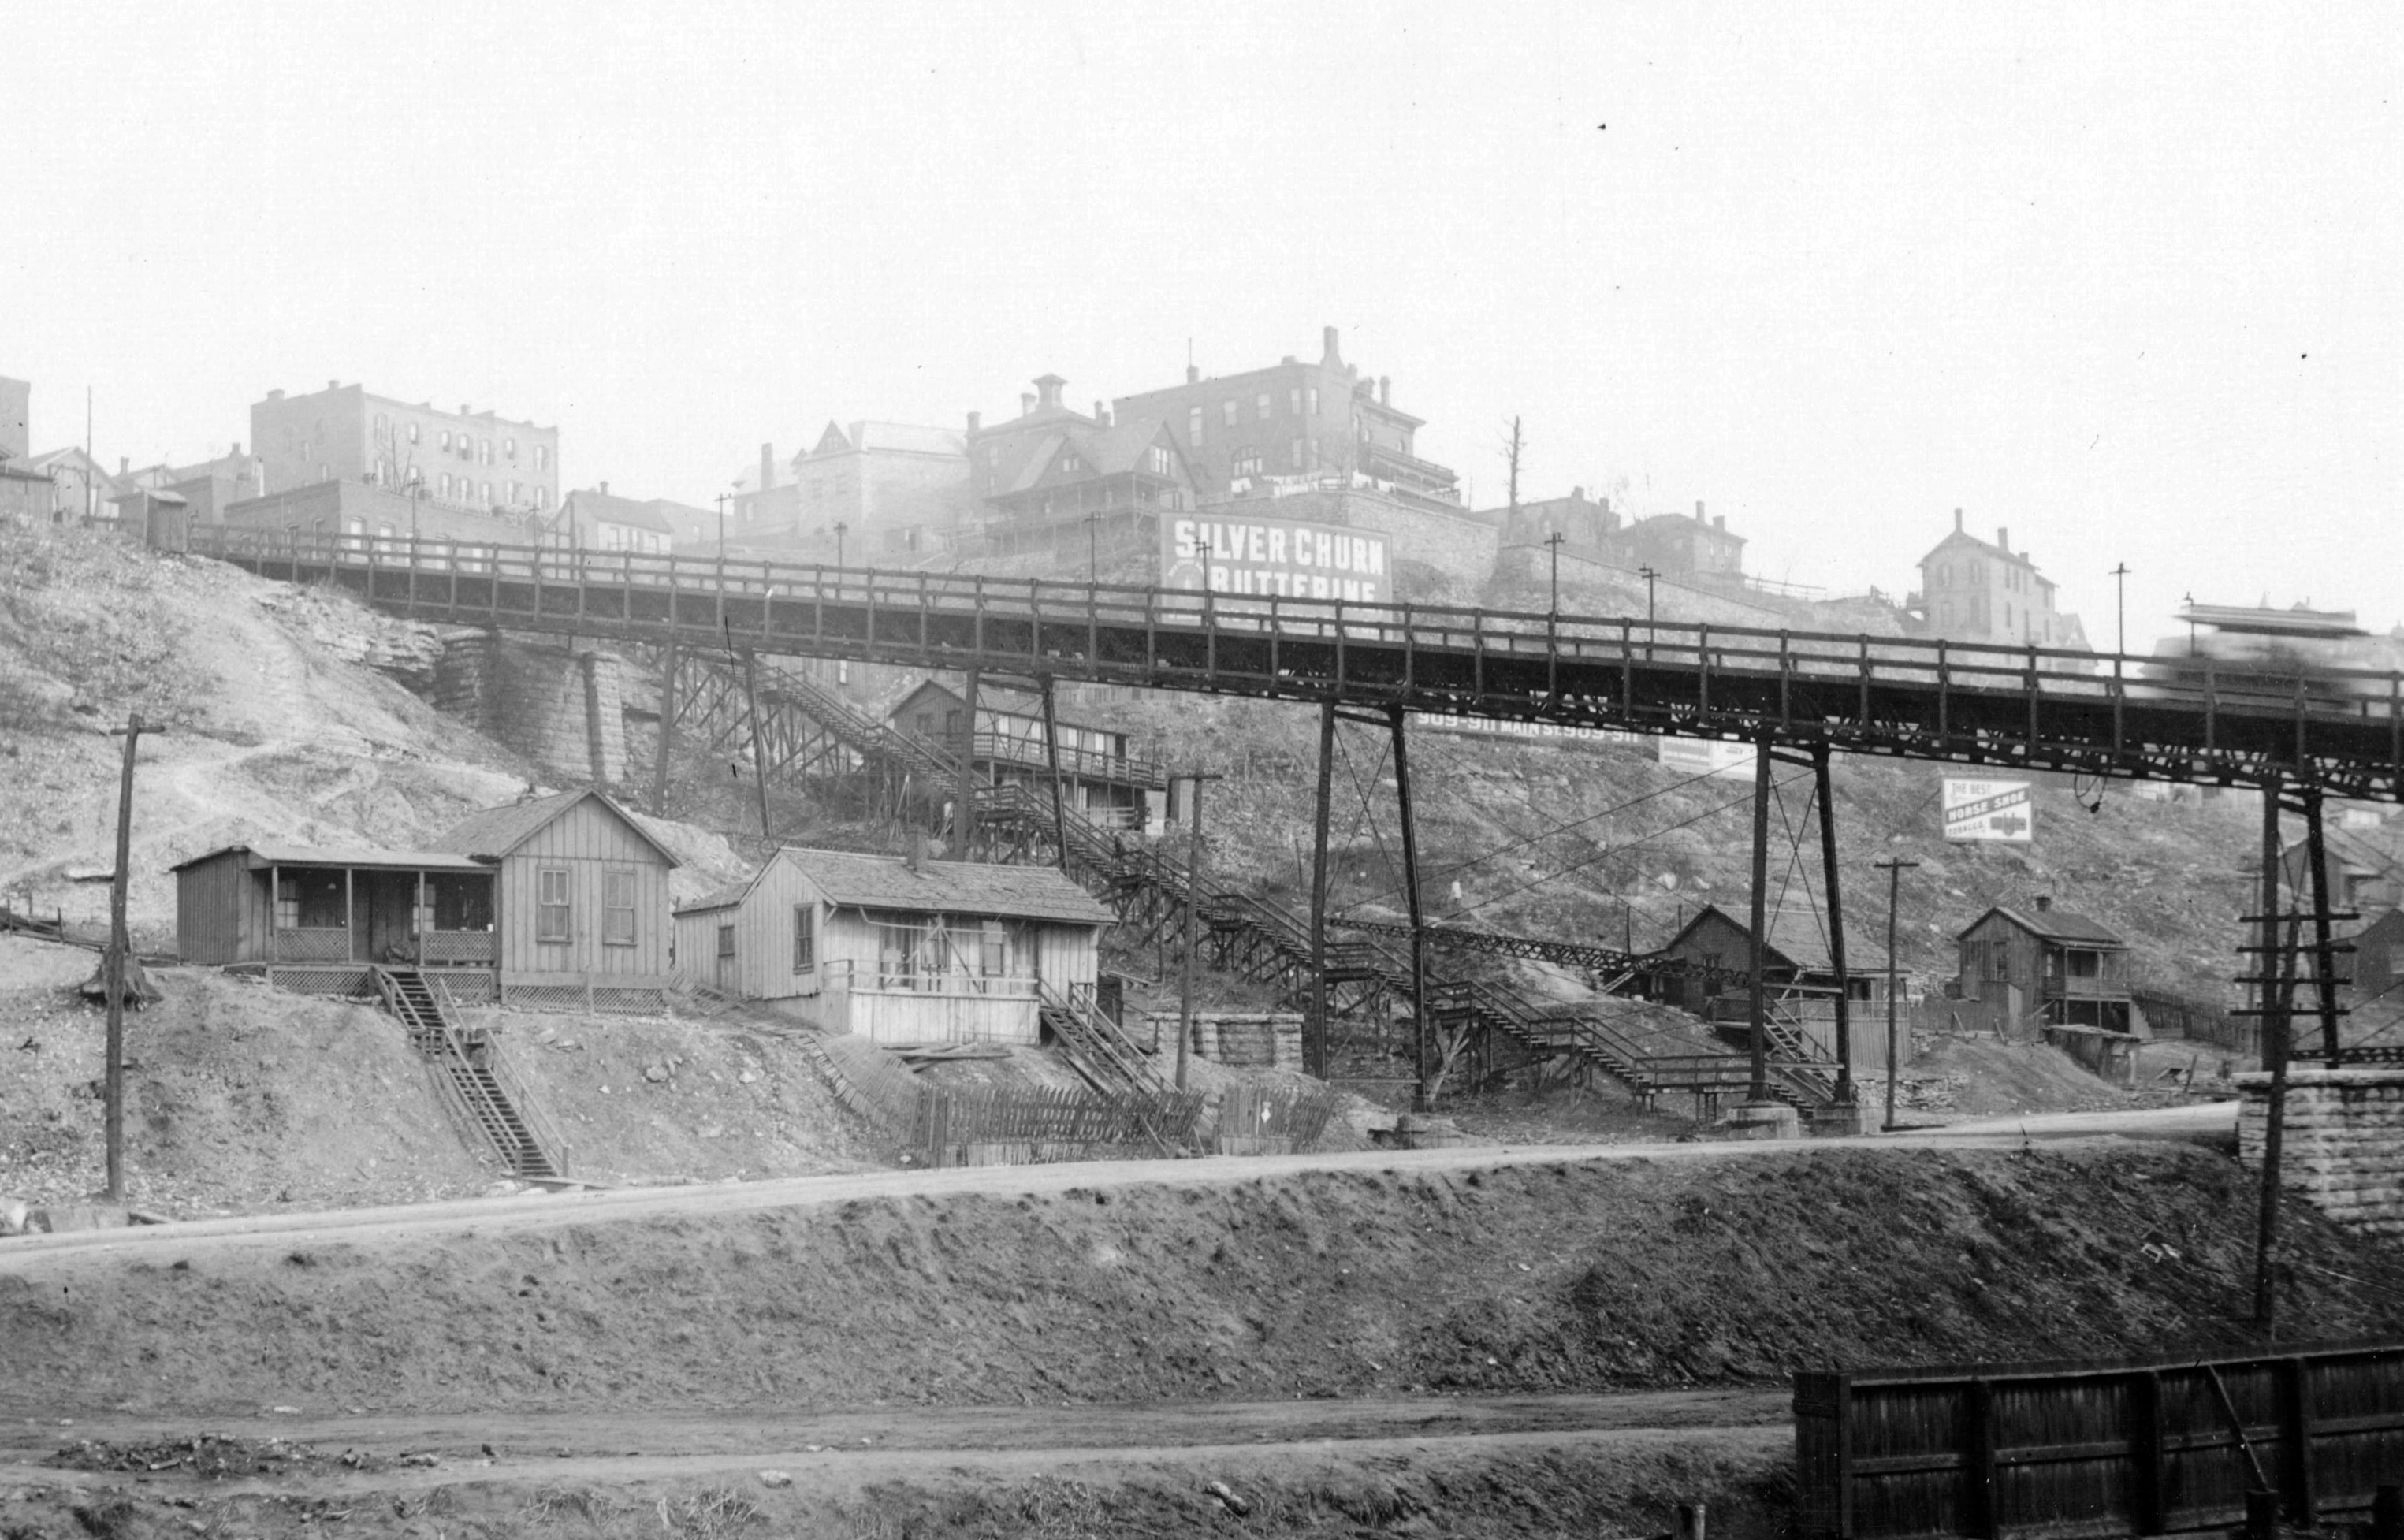 The Ninth Street Incline with staircase leading from Quality Hill down to Bluff Street, 1895